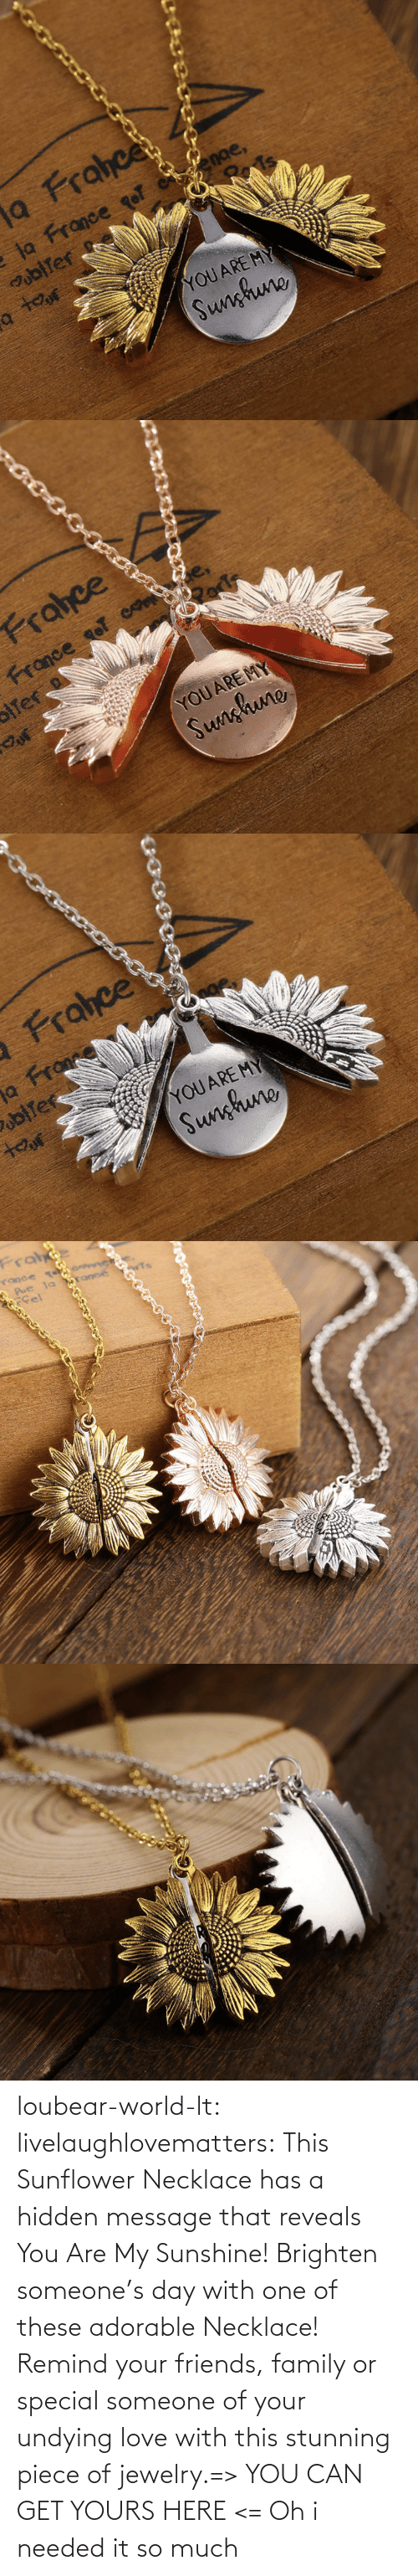 Family, Friends, and Love: loubear-world-lt:  livelaughlovematters:  This Sunflower Necklace has a hidden message that reveals You Are My Sunshine! Brighten someone's day with one of these adorable Necklace! Remind your friends, family or special someone of your undying love with this stunning piece of jewelry.=> YOU CAN GET YOURS HERE <=   Oh i needed it so much